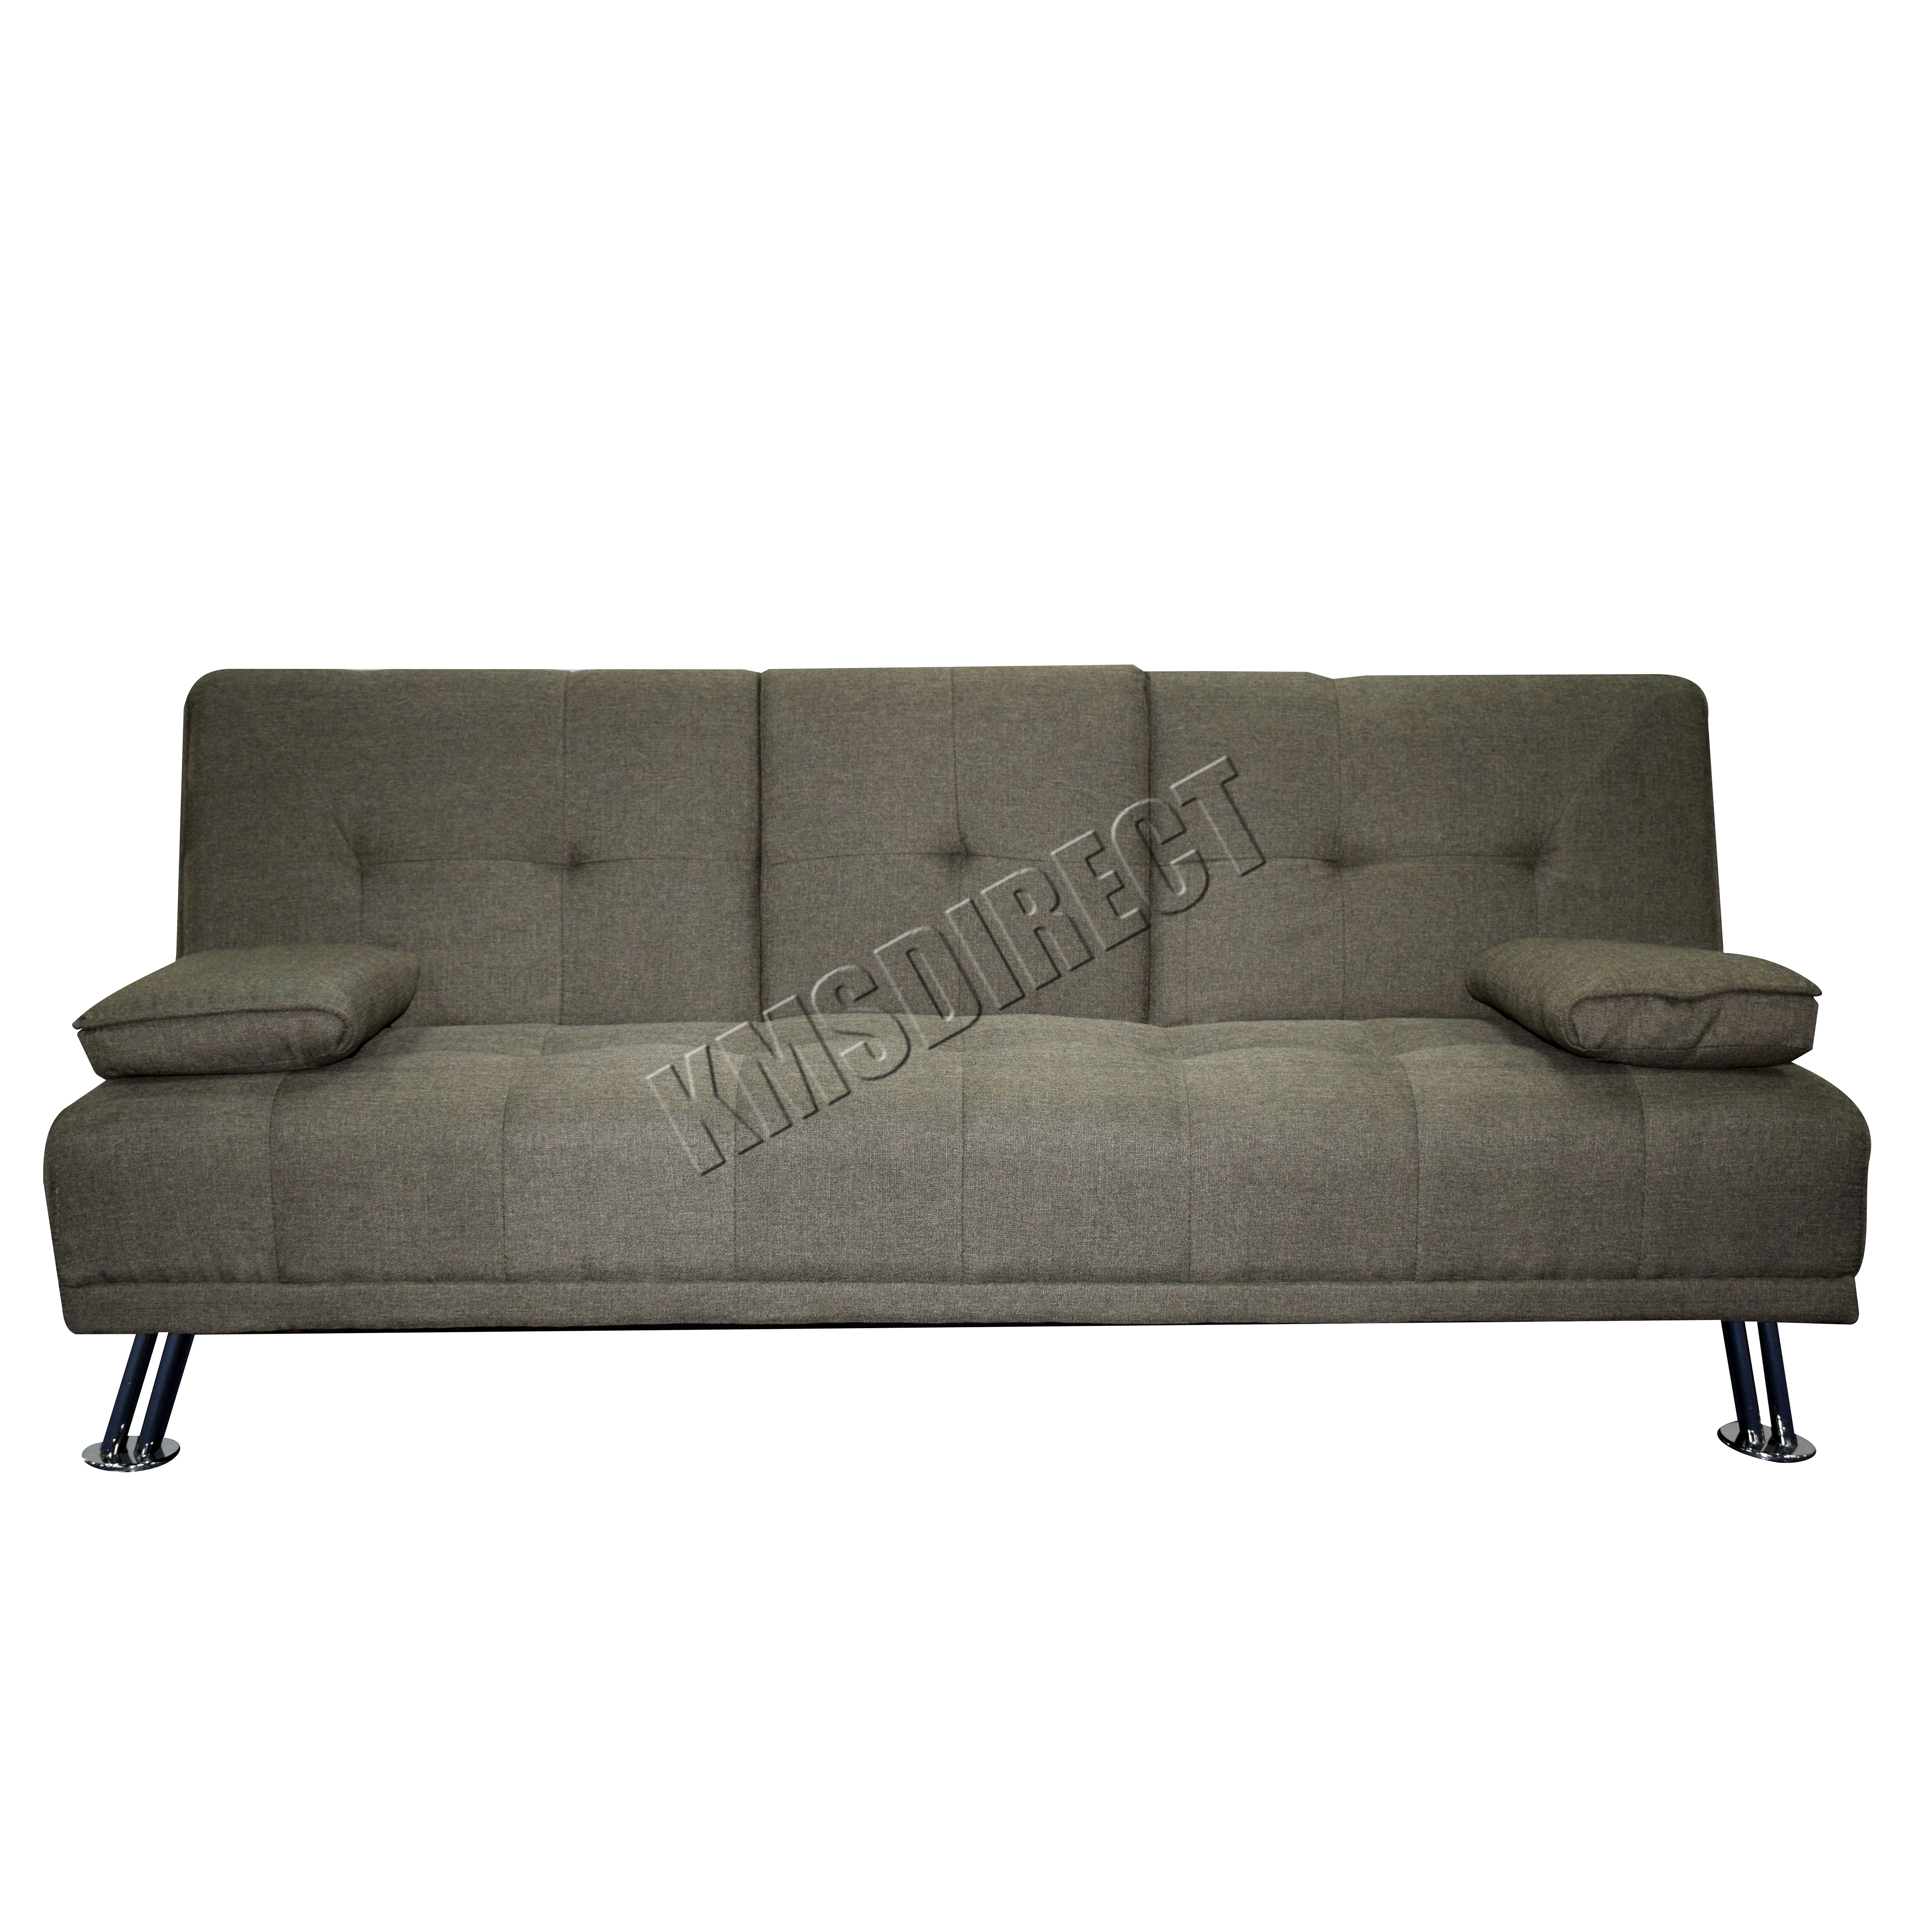 WestWood Fabric Manhattan Sofa Bed Recliner 3 Seater ...